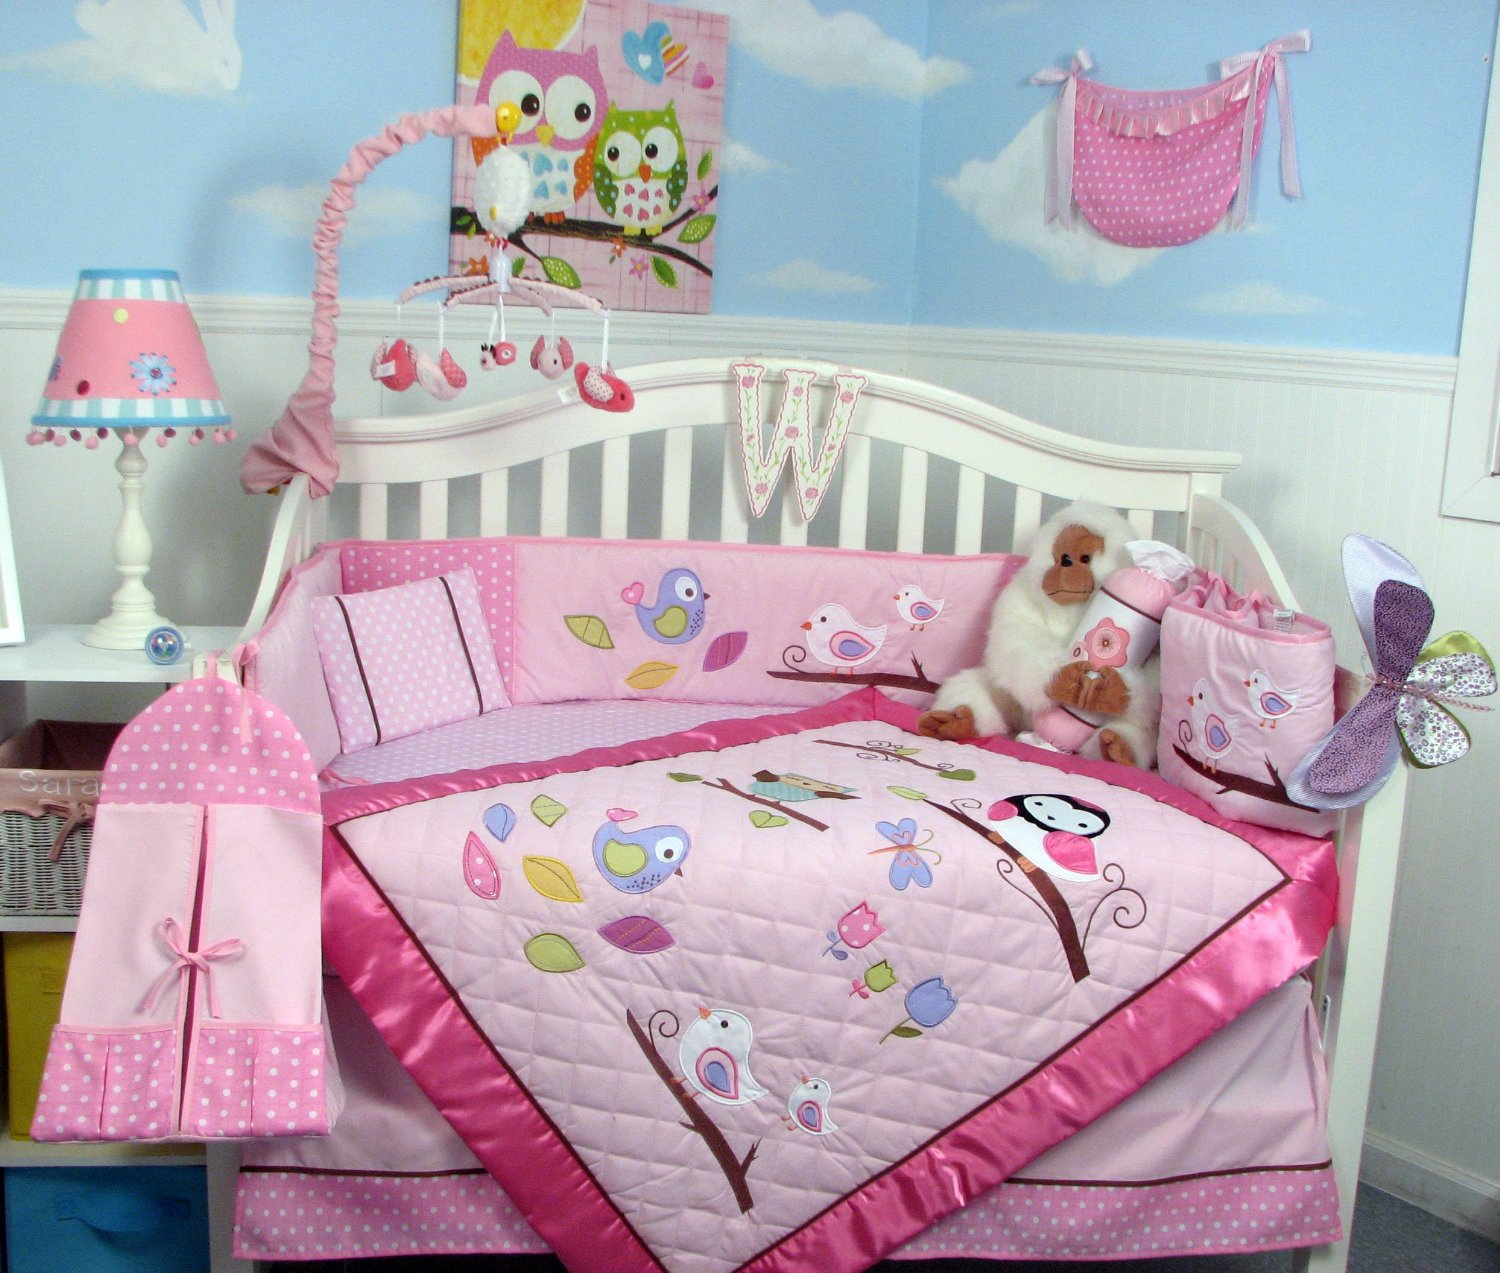 Soho Owls Meadowland Crib Bedding